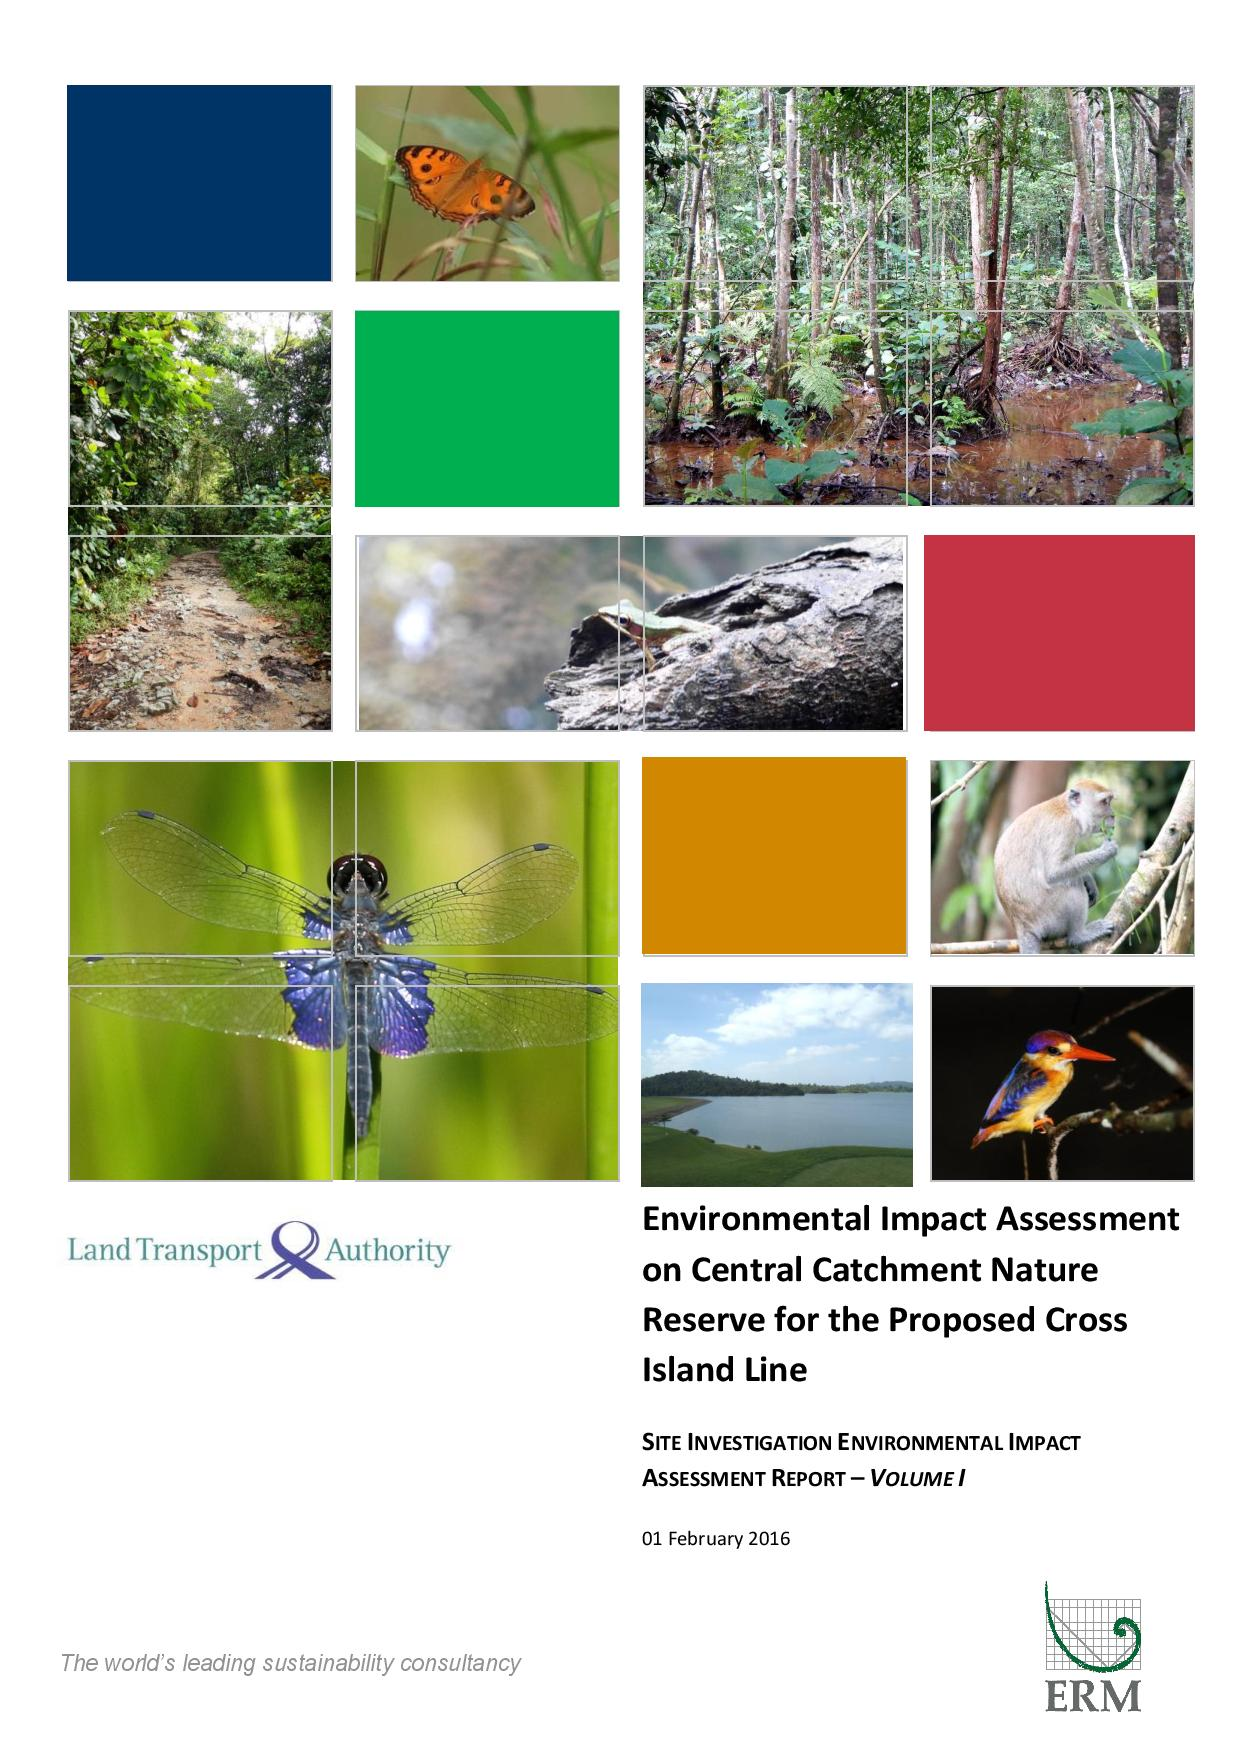 LTA Environmental Impact Assessment on Central Catchment Nature Reserve for the pRoposed Cross Island Line - Executive Summary